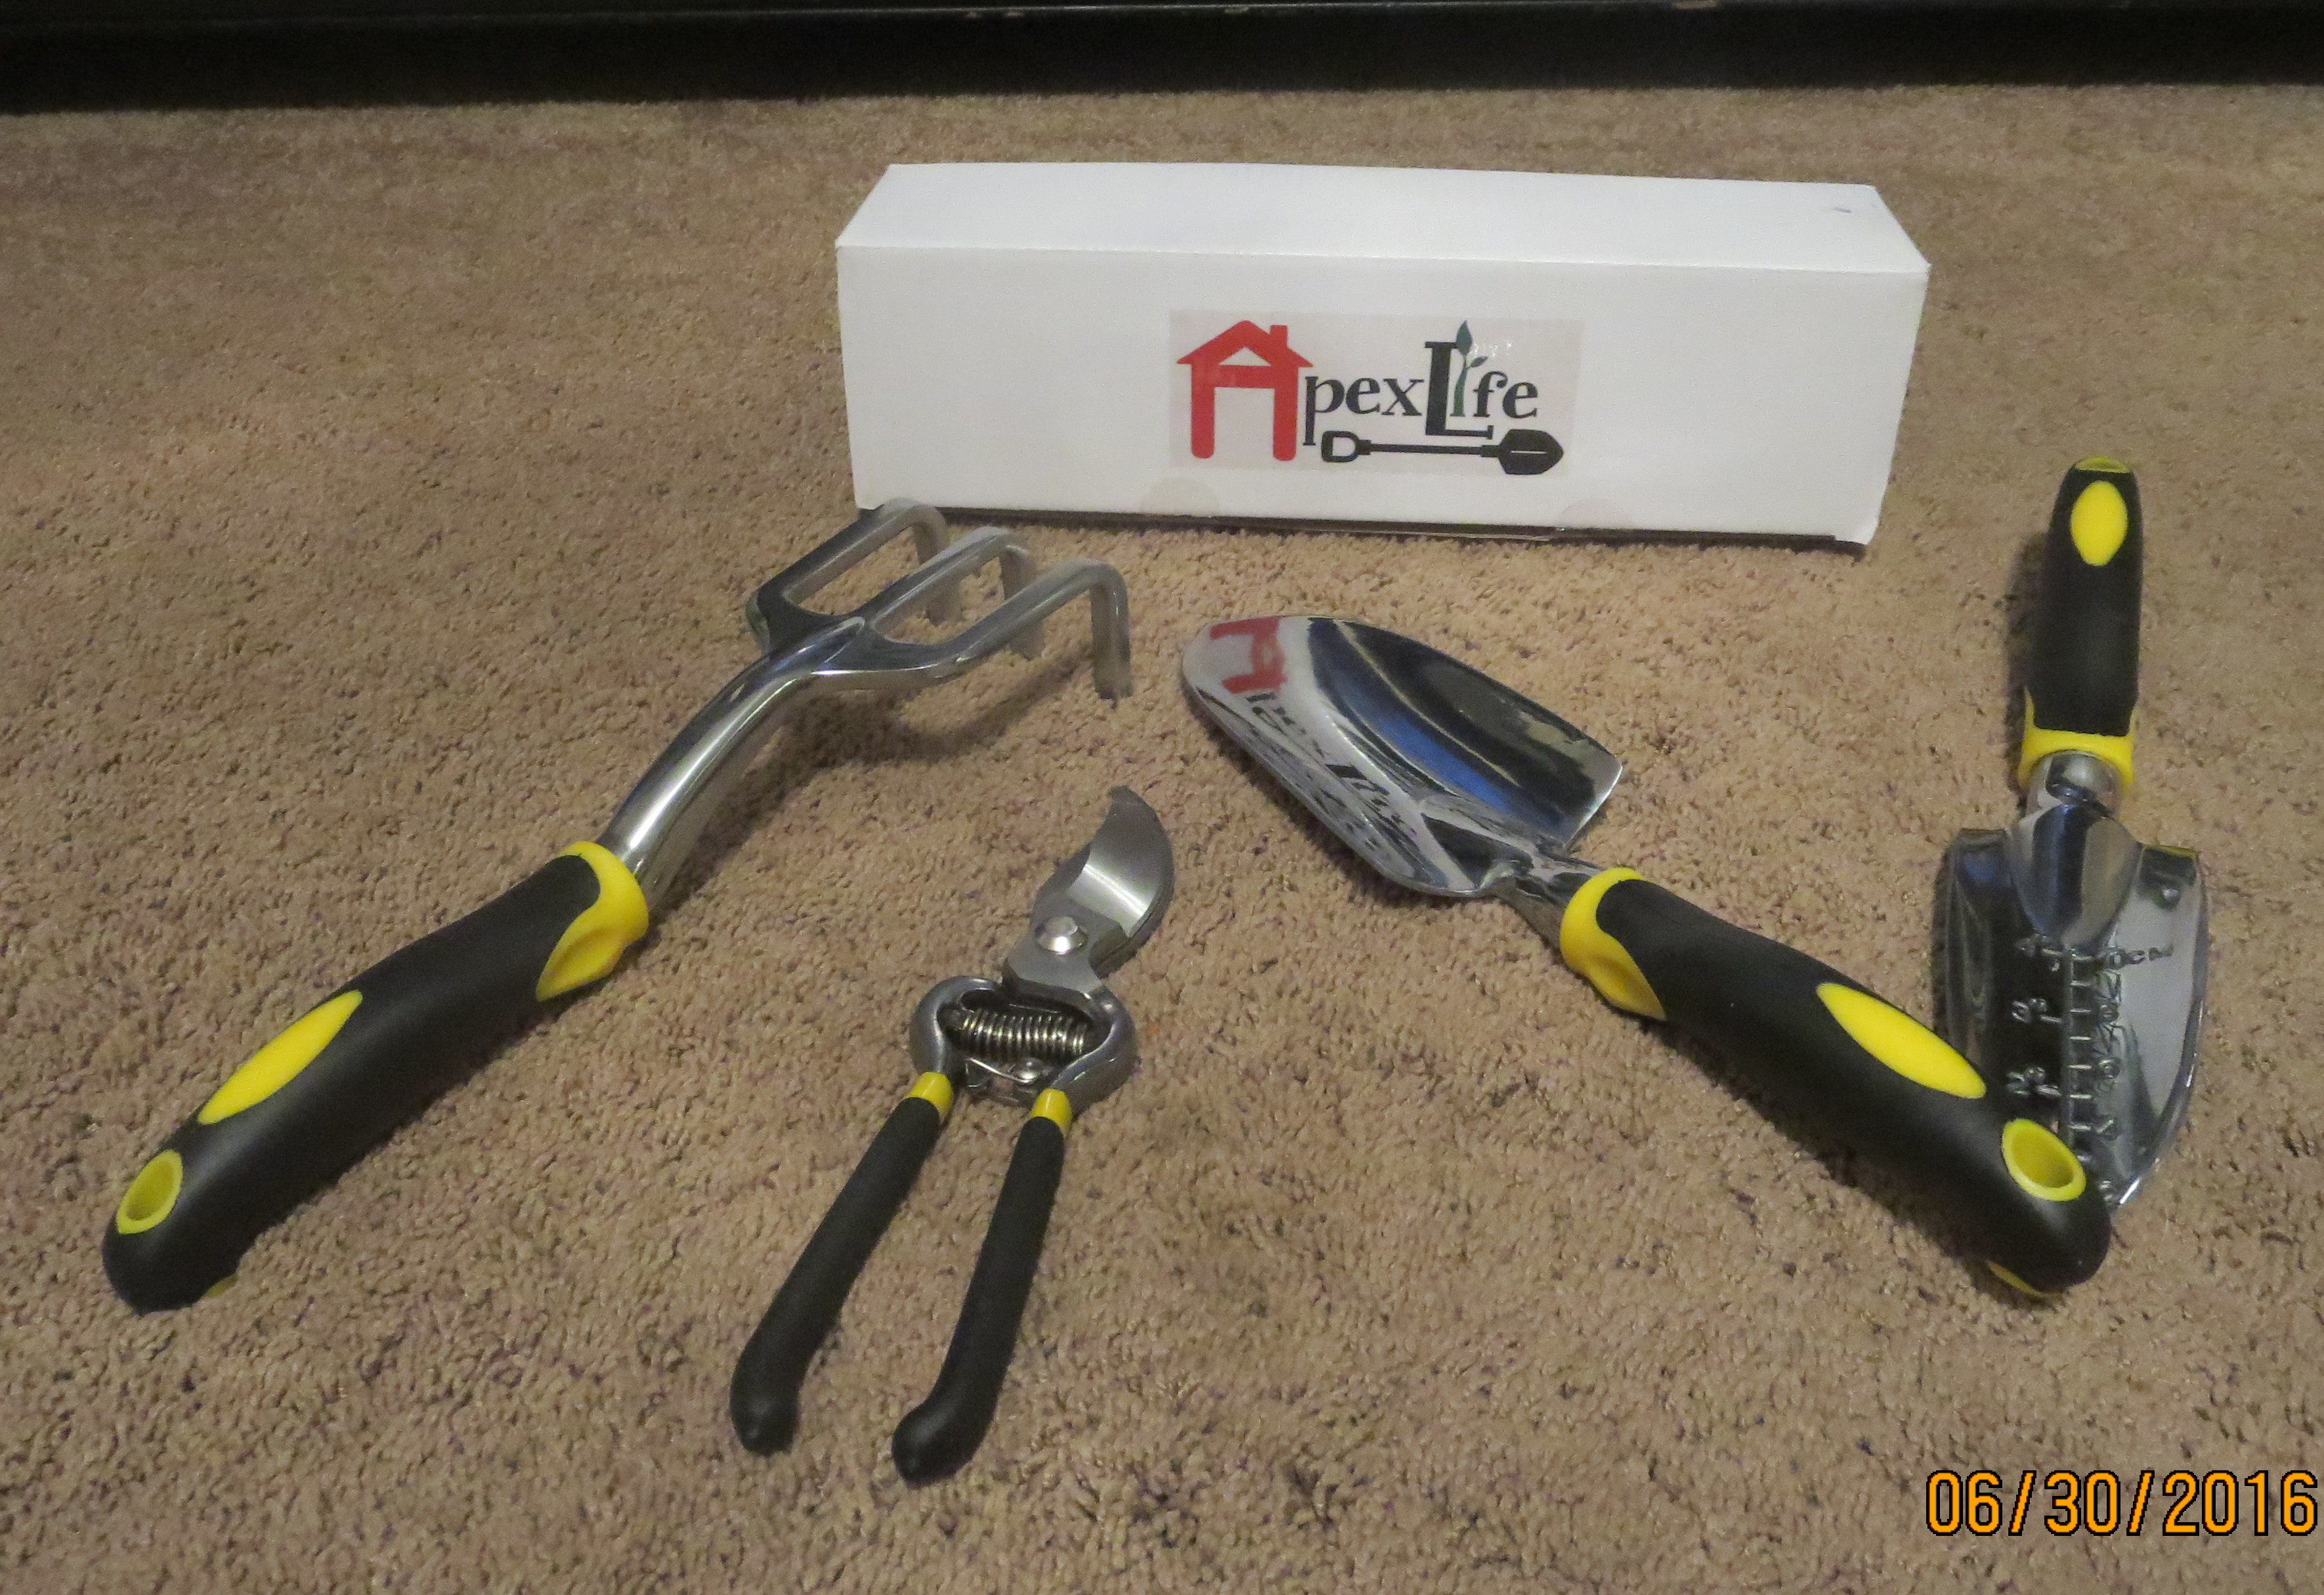 Apex gardening tool set review for Gardening tools reviews